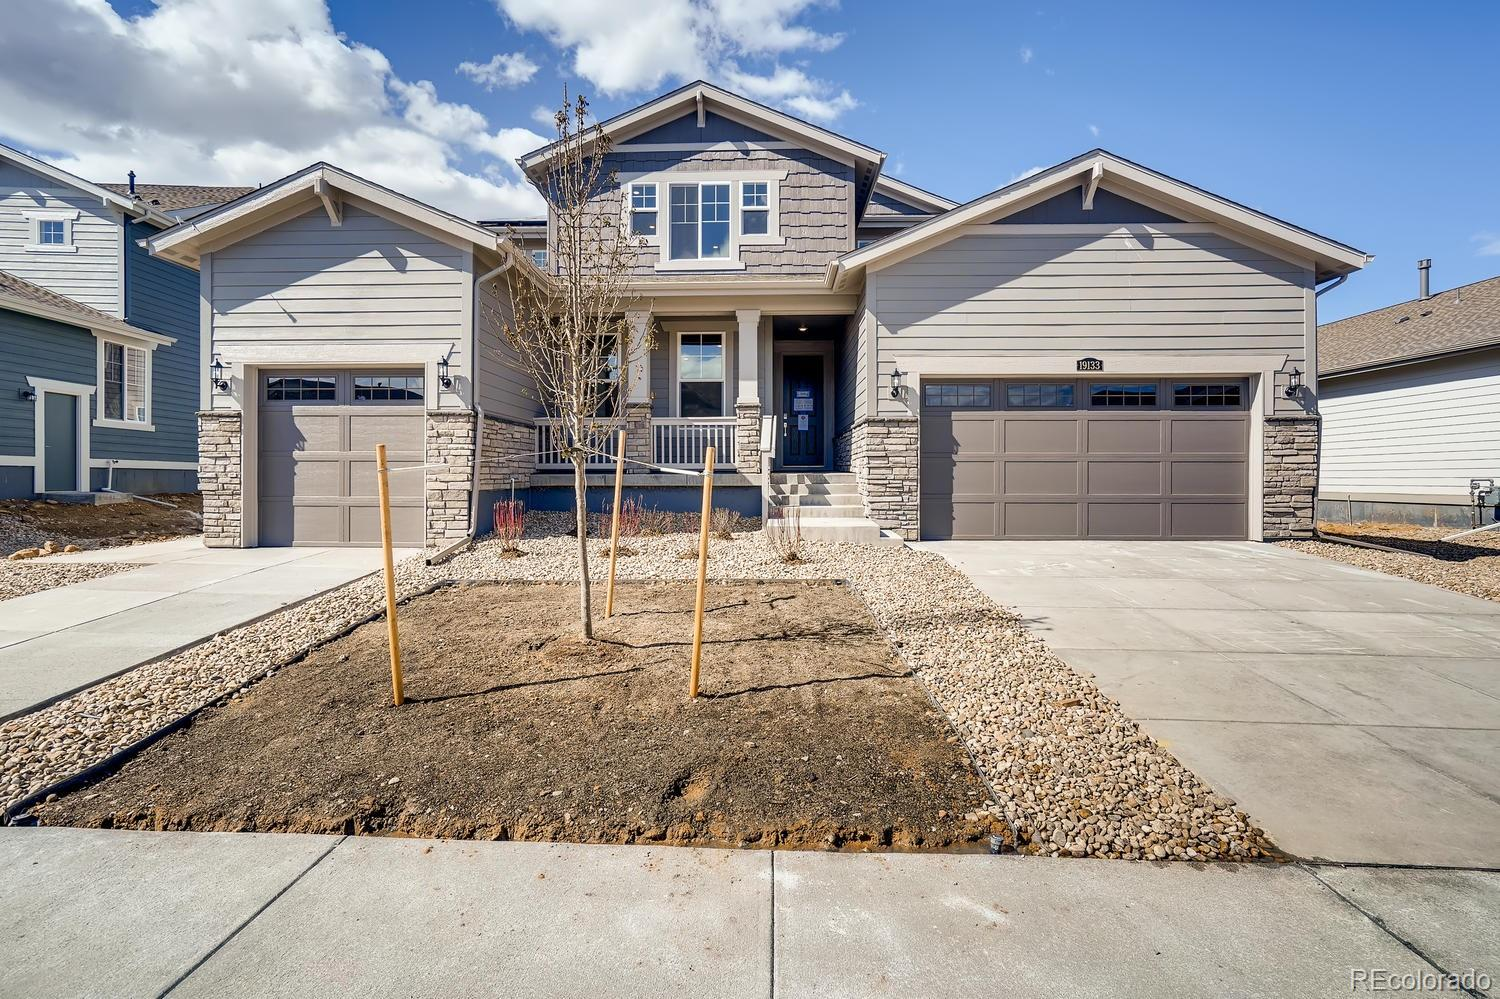 19133 W 95th Lane, Arvada, CO 80007 - Arvada, CO real estate listing